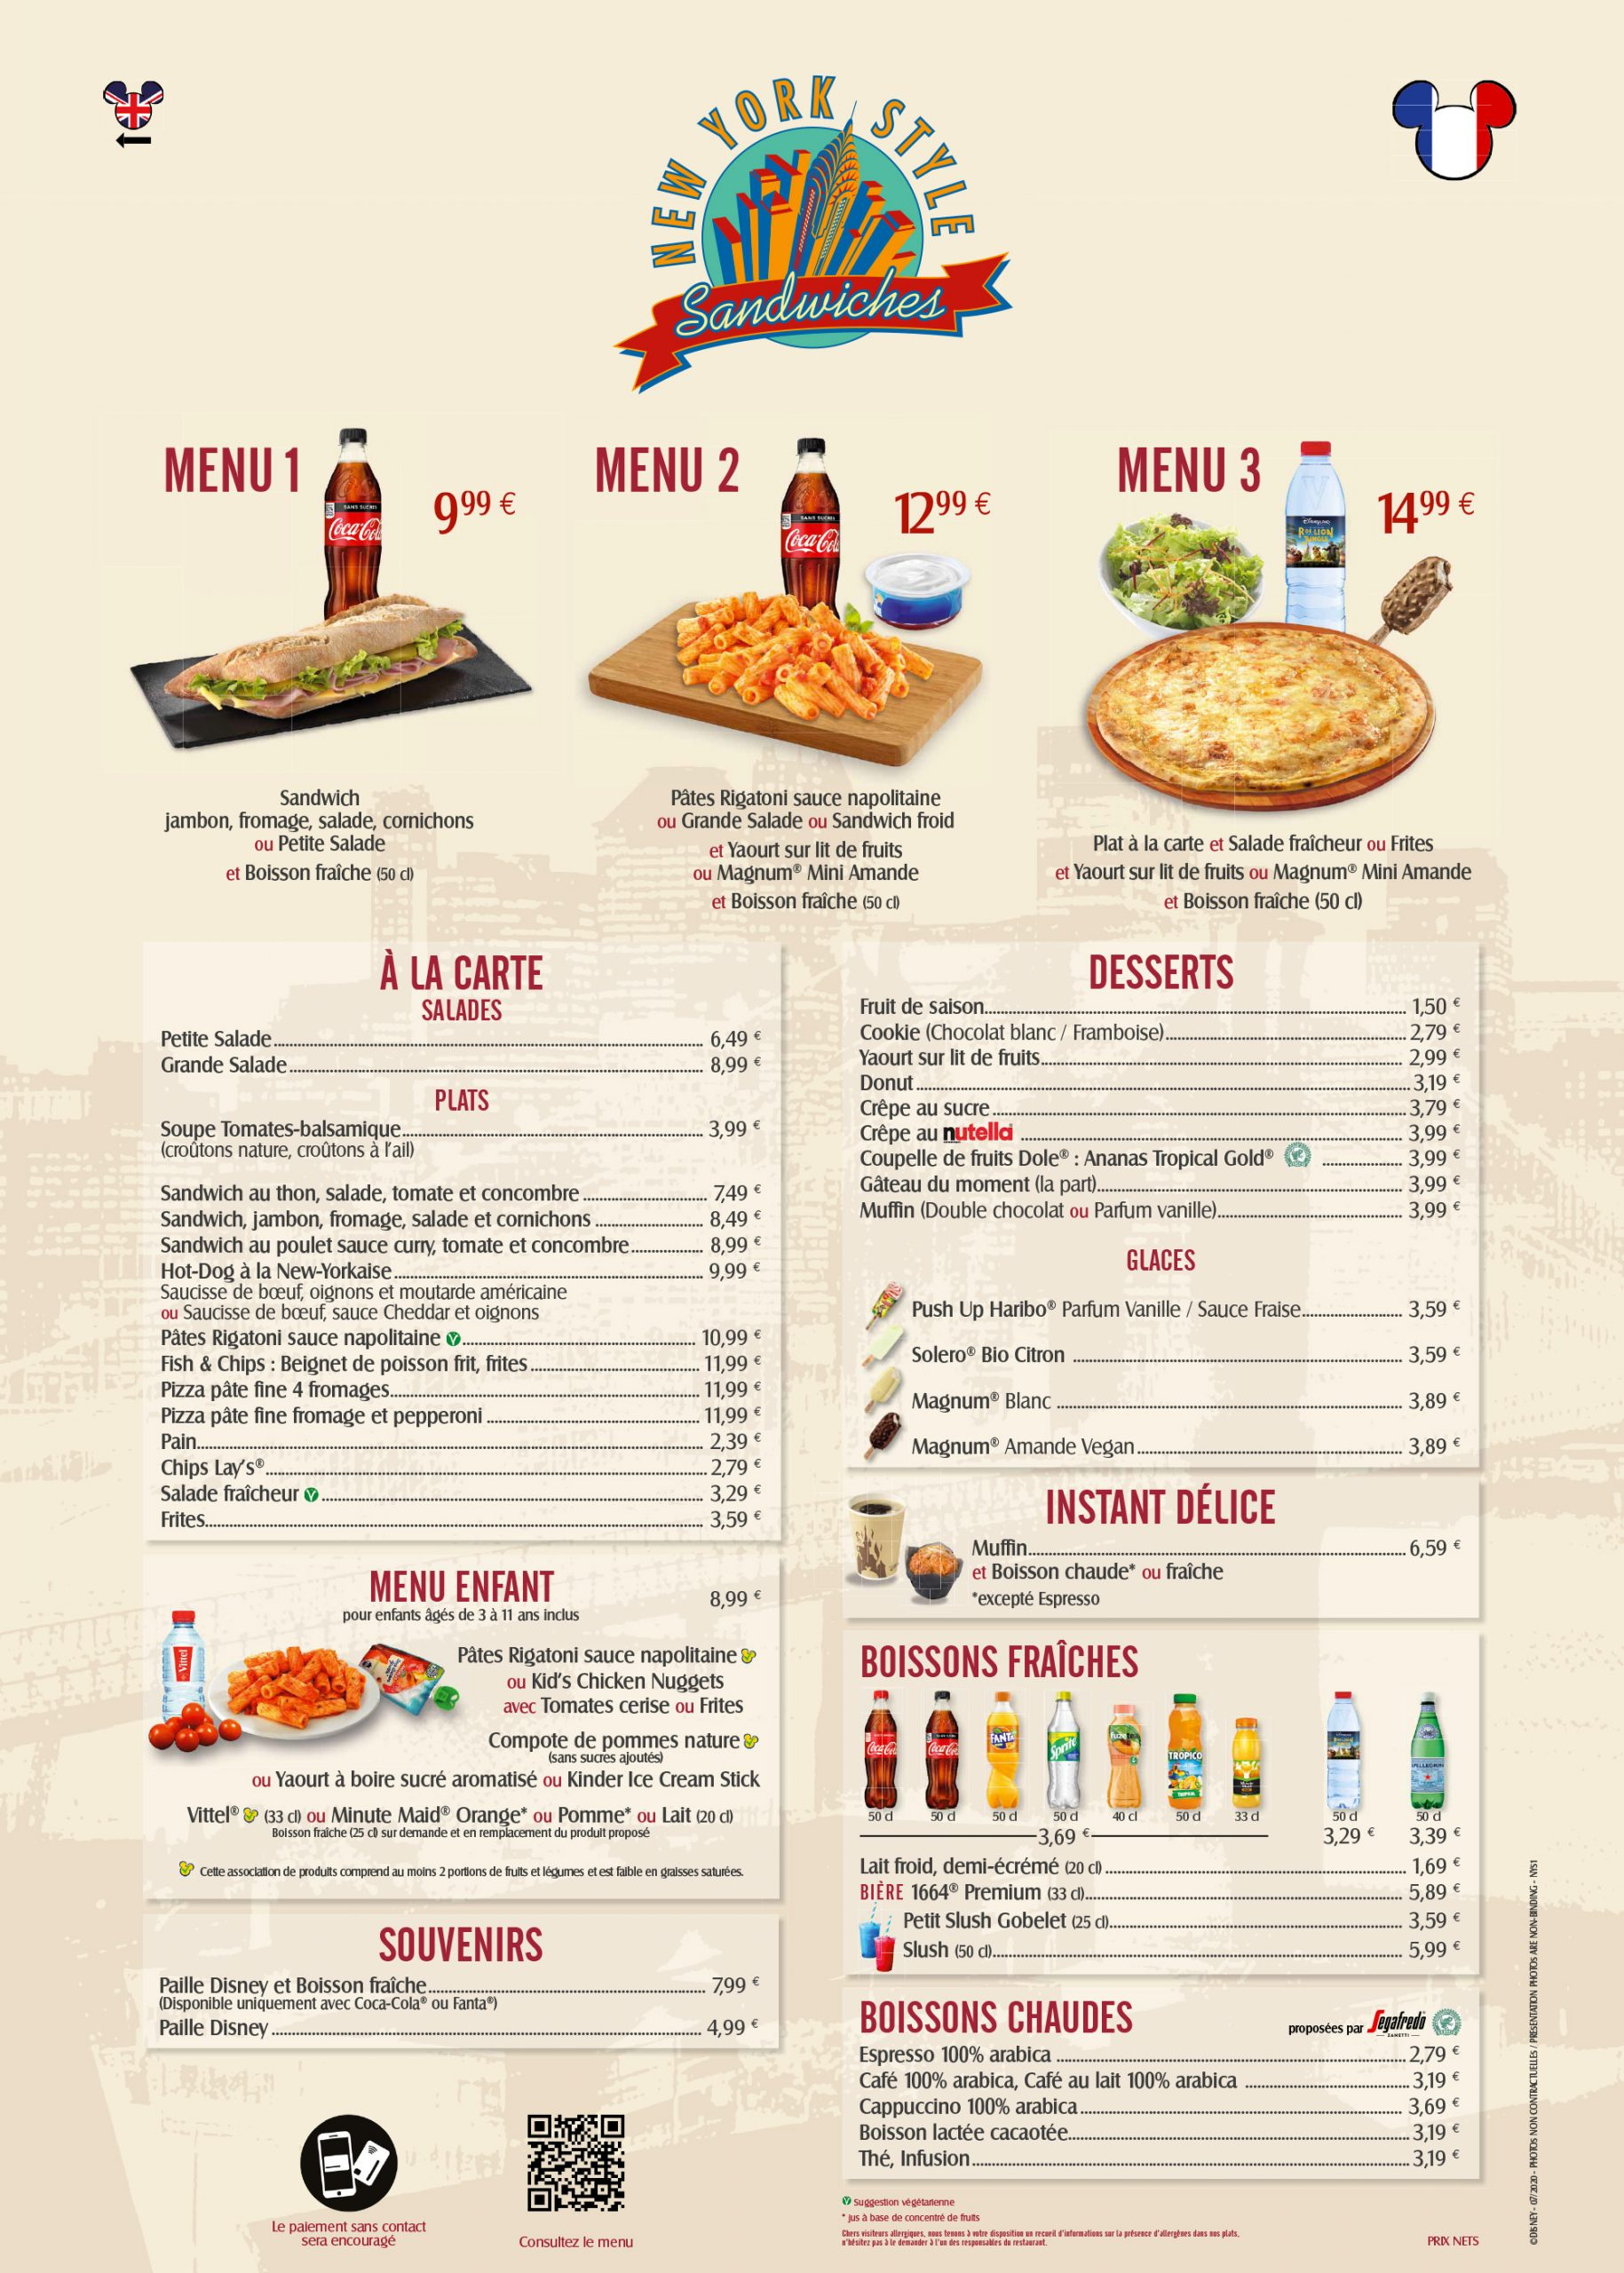 menu-disneyland-paris-2020-new-york-style-disney-village